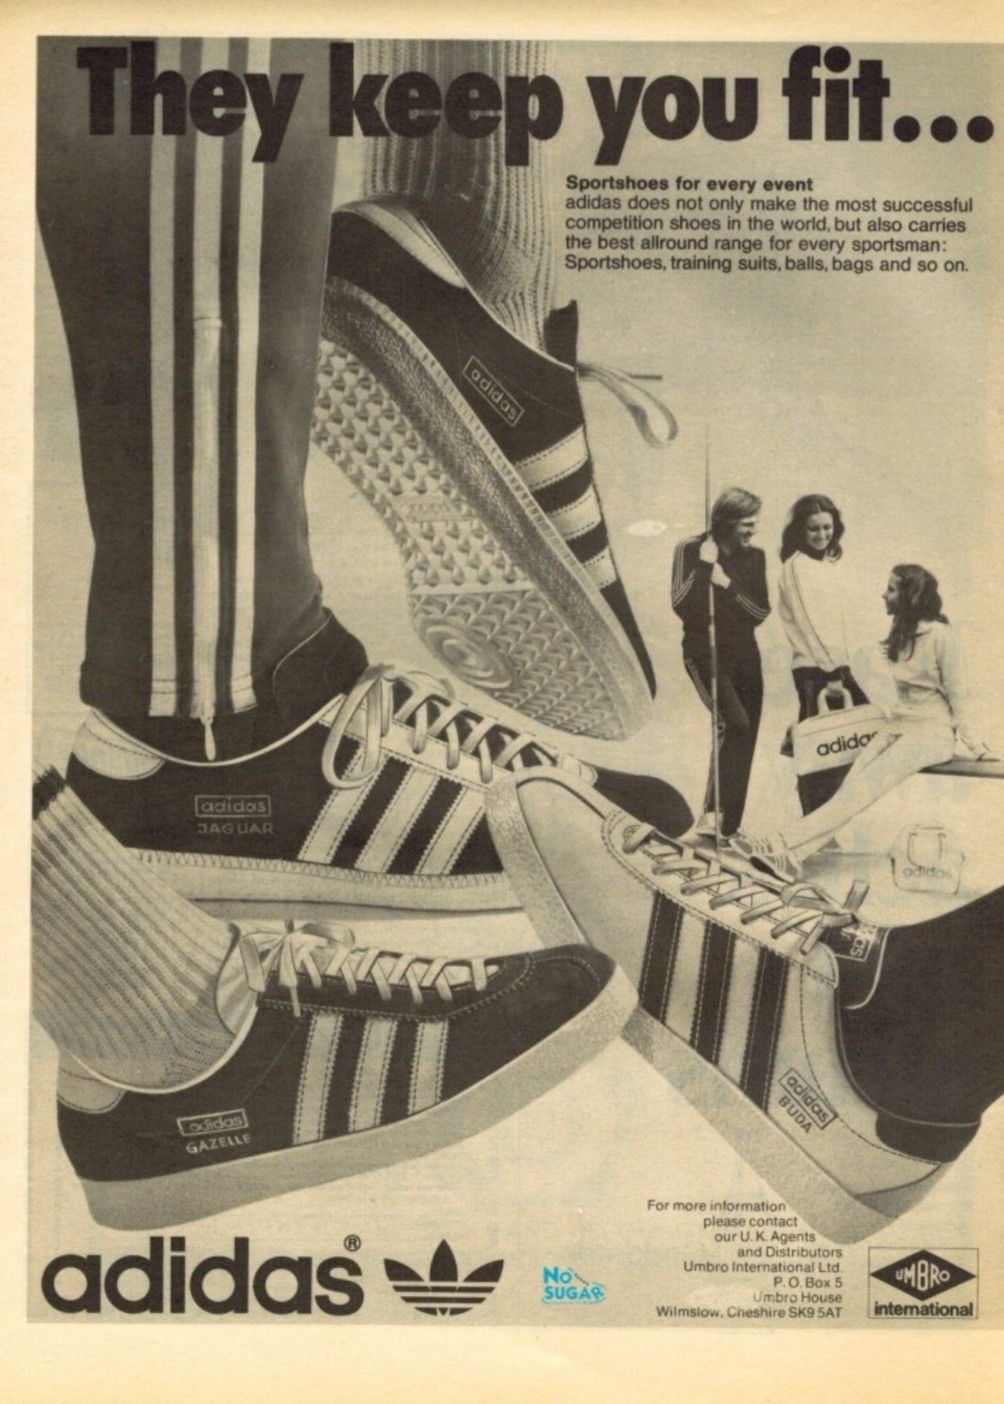 1b31679d2a26 Wonderful Adidas period advertising from the 70 s showing Gazelles ...